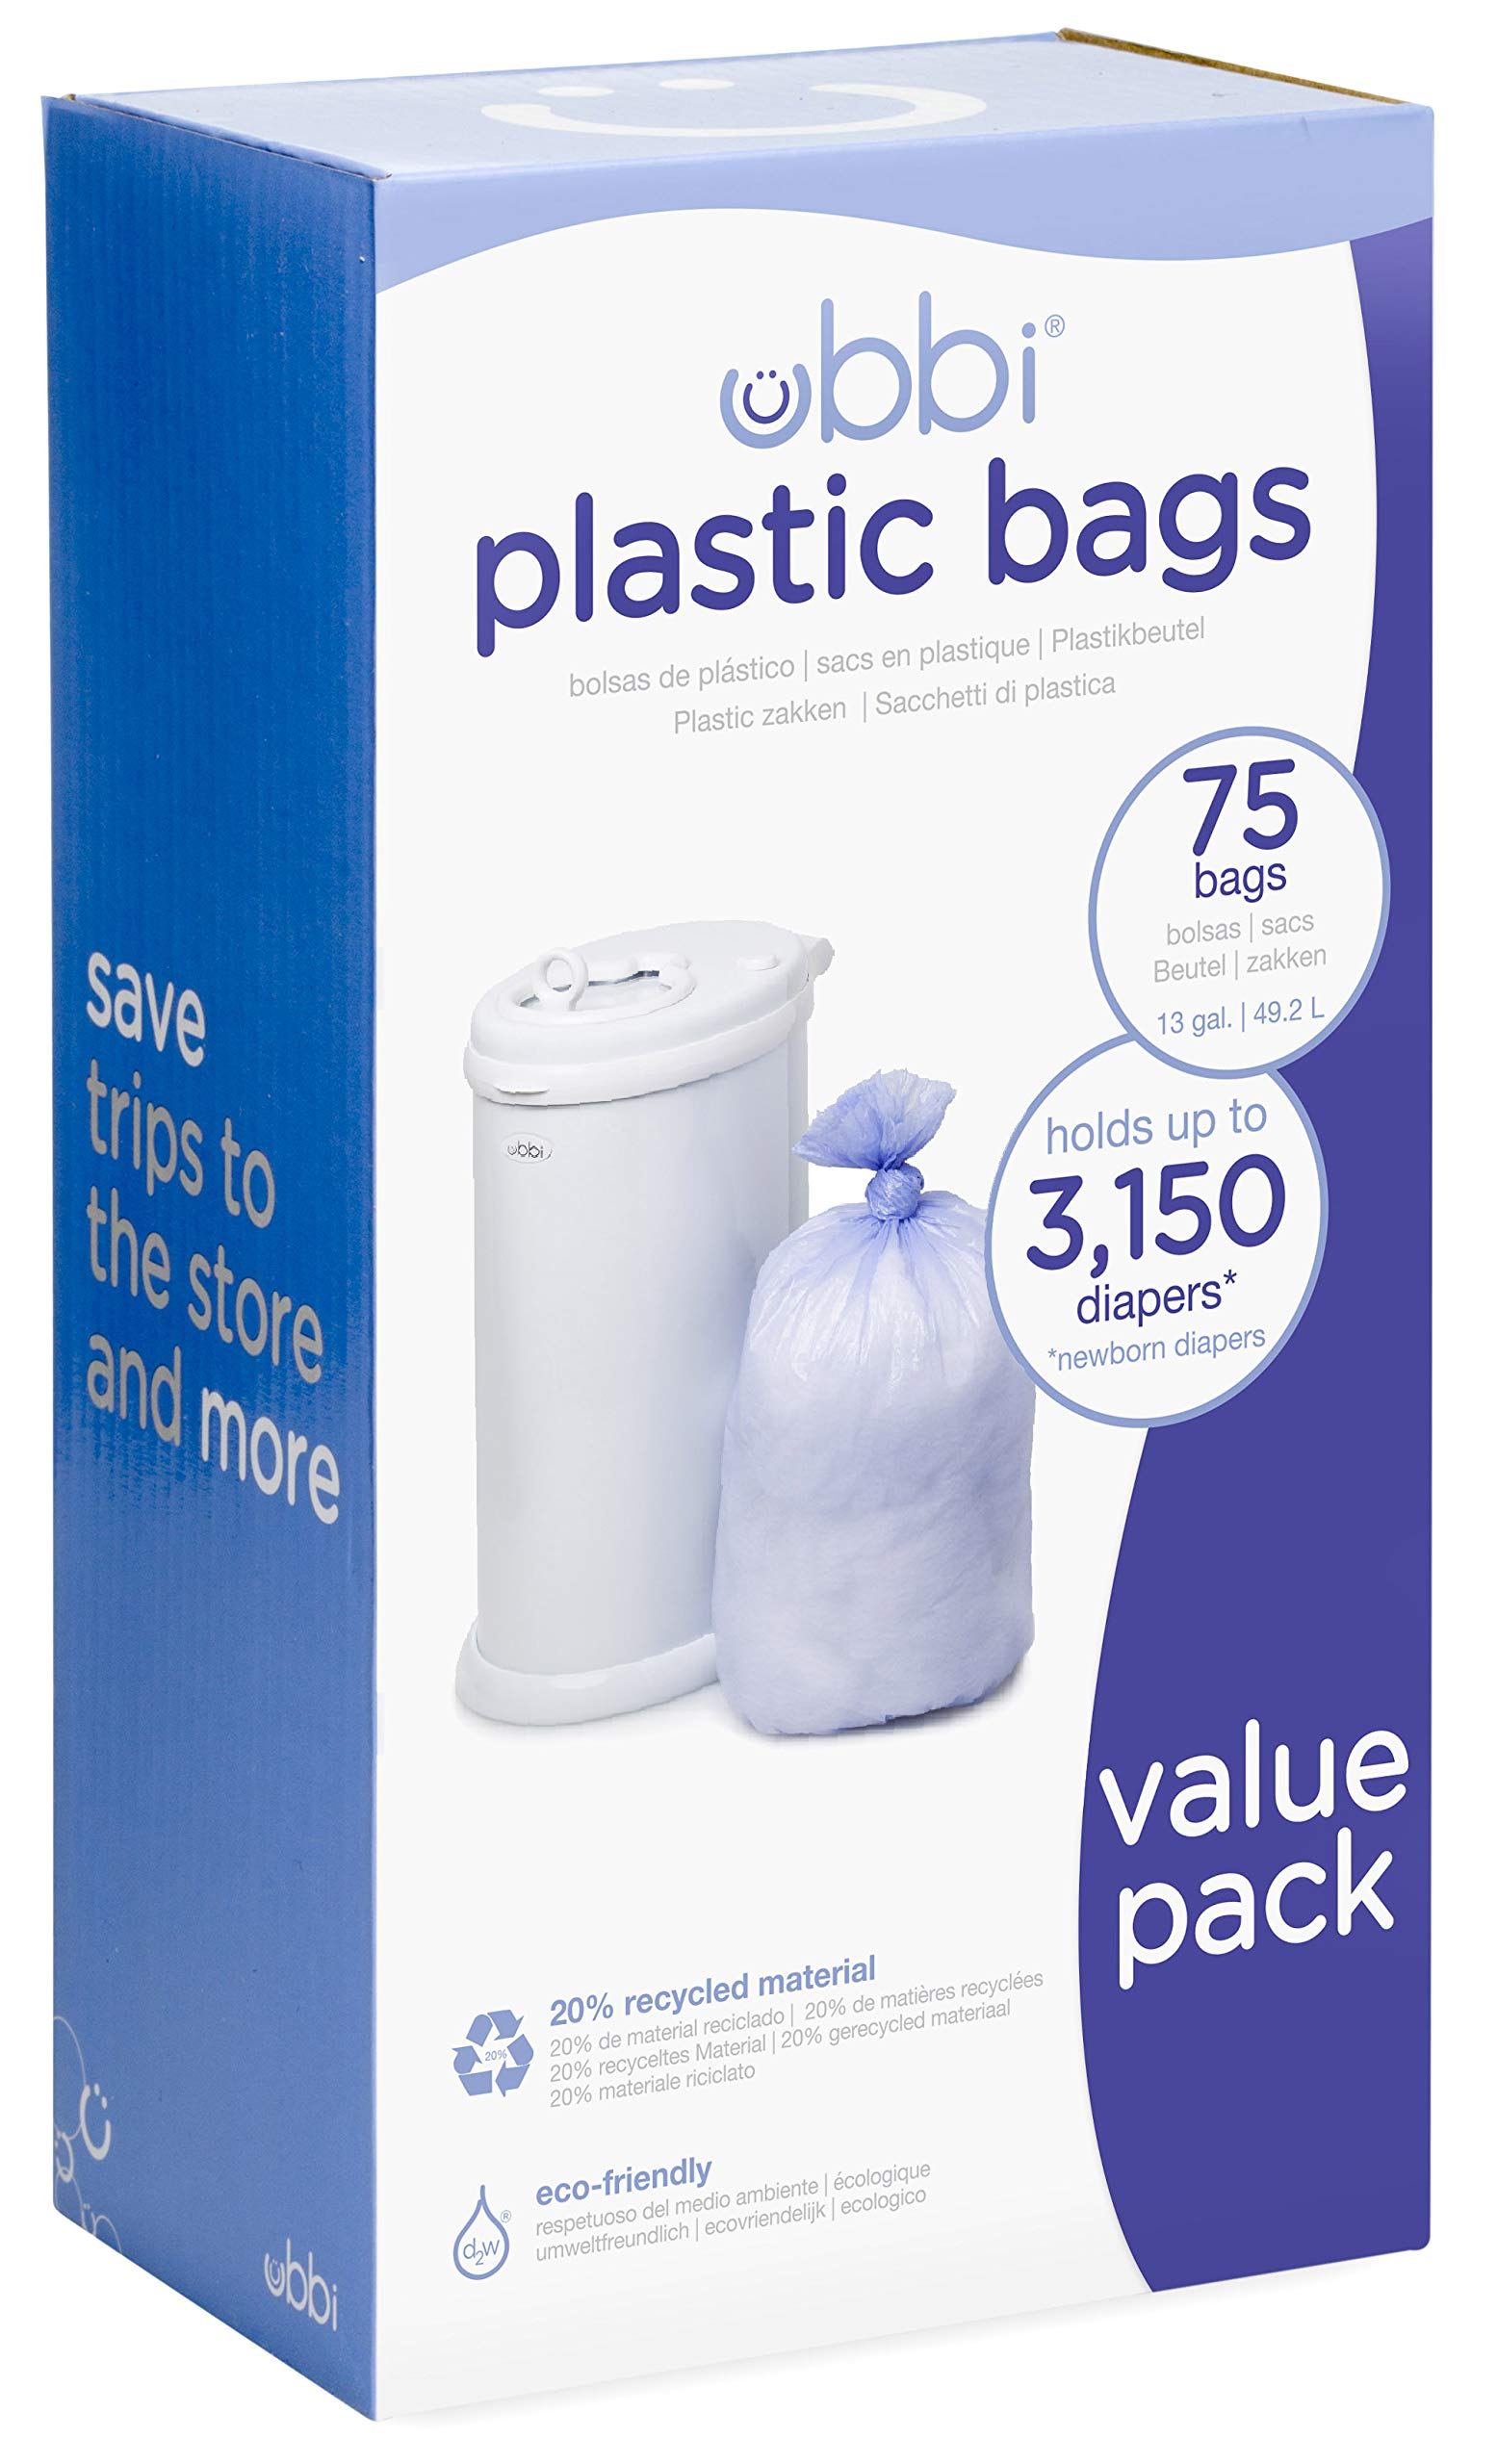 Ubbi Disposable Diaper Pail Plastic Bags, Made with Recyclable Material, True Value Pack, 75 Count, 13-Gallon